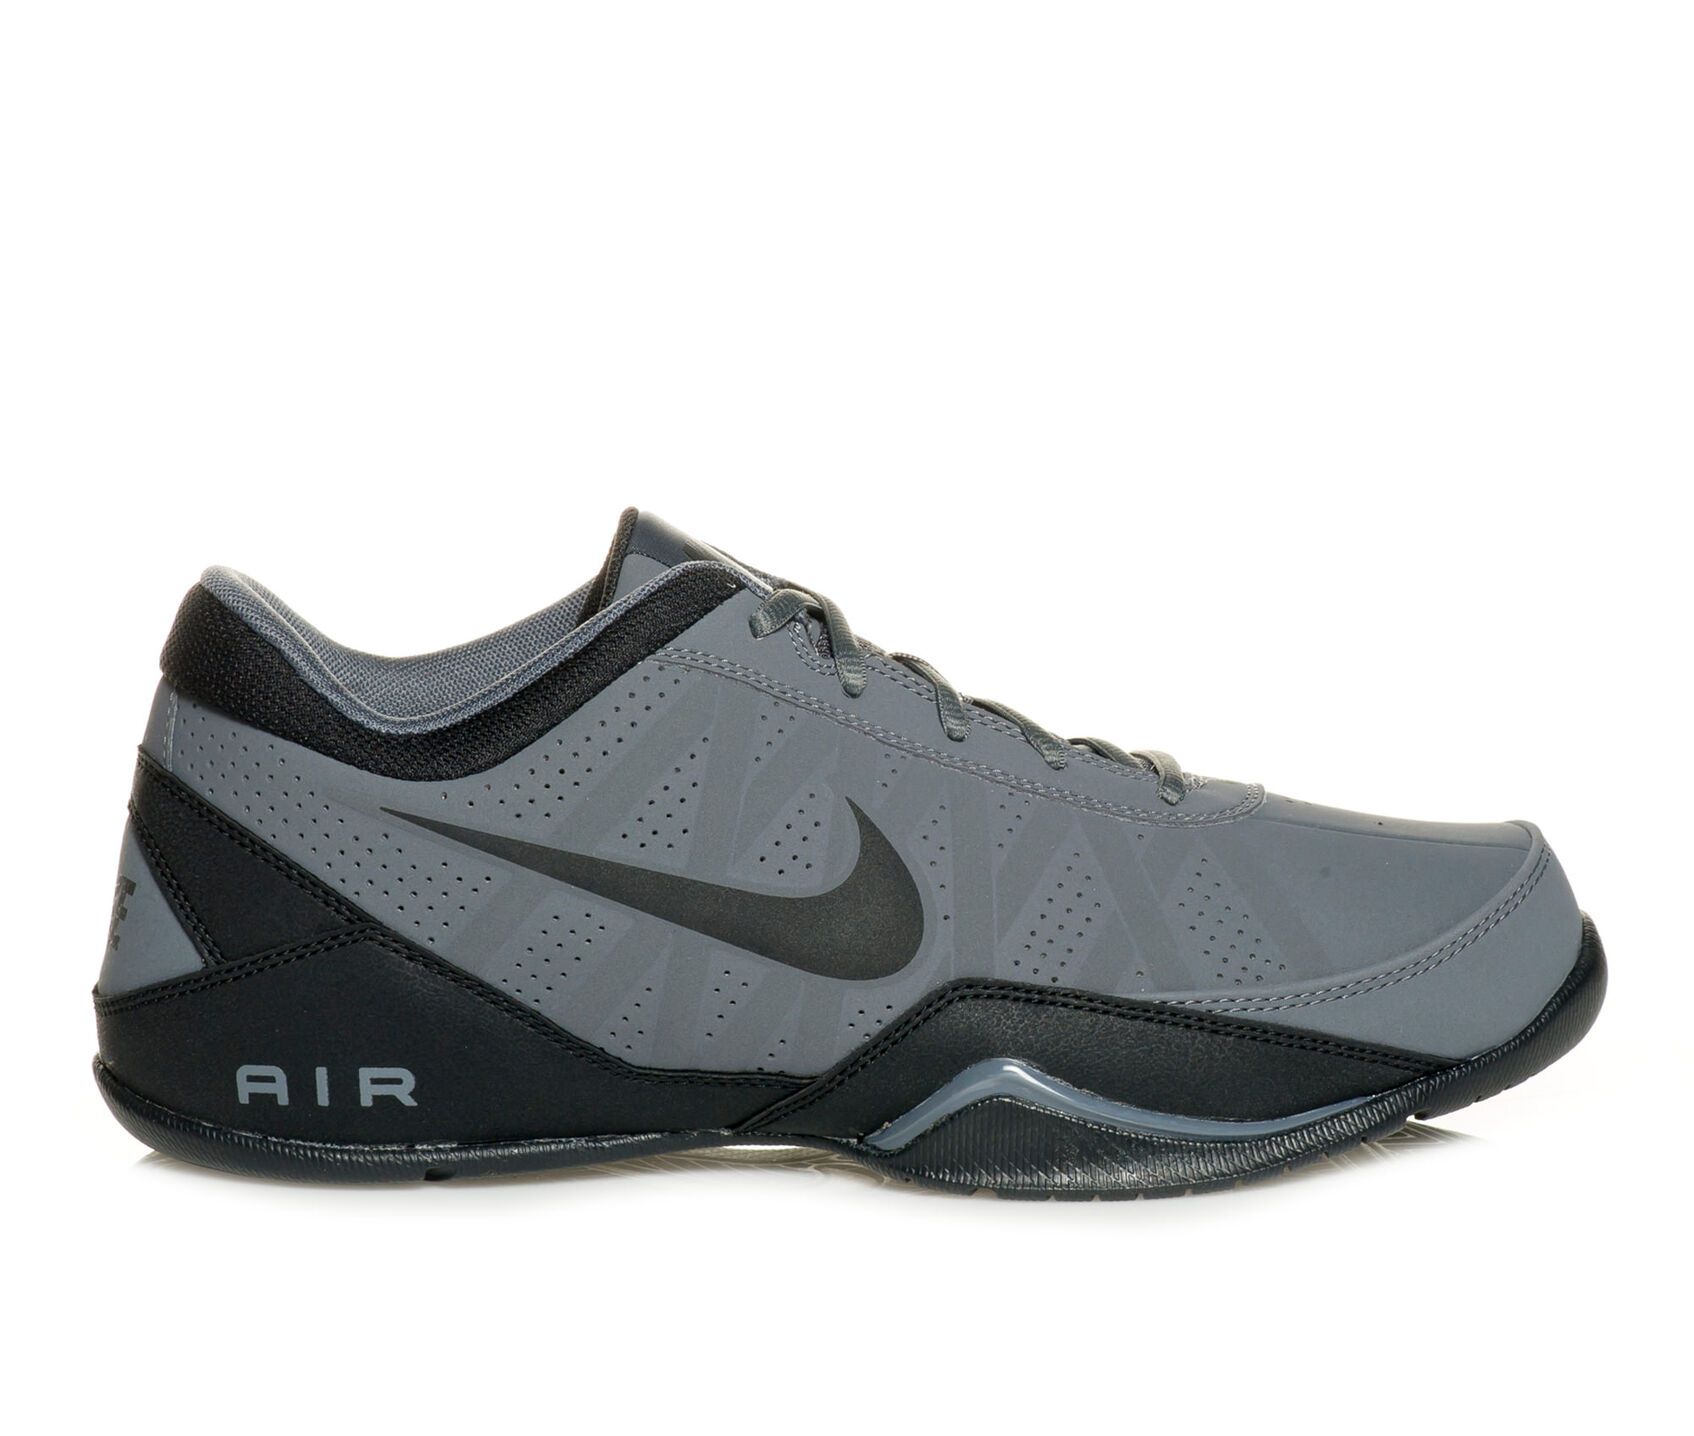 759f26e258cc ... Nike Air Ring Leader Low Basketball Shoes. Previous